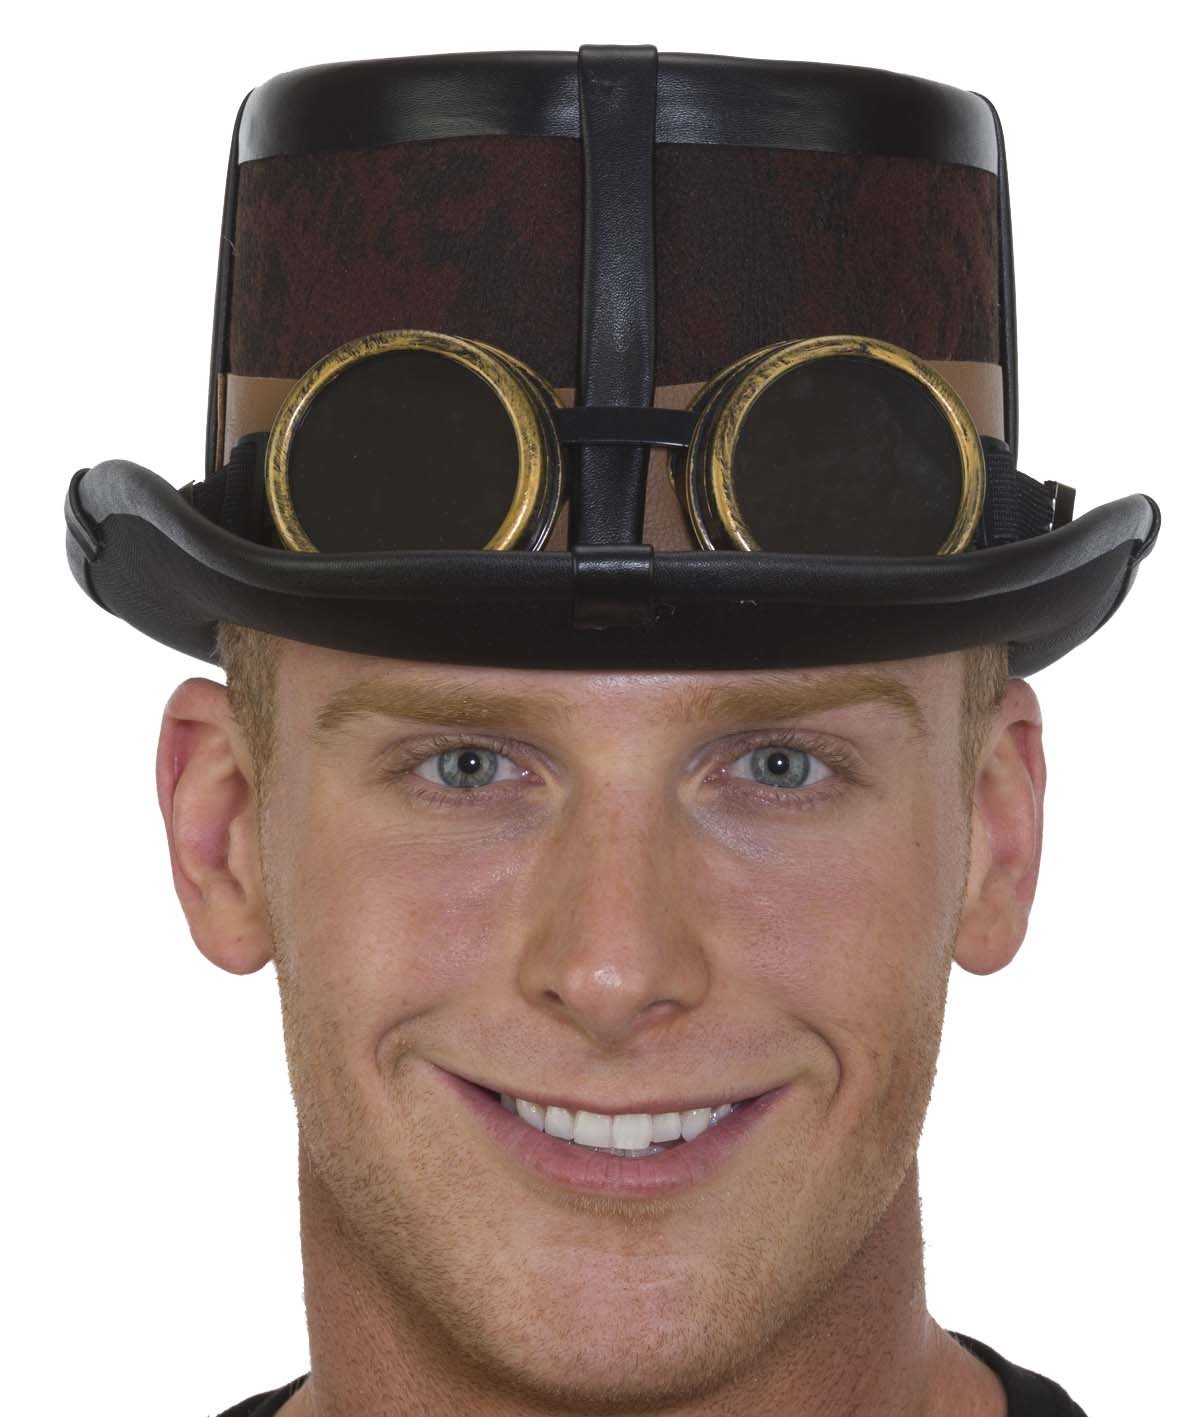 Caufields Brown Steampunk Hat with Black Straps,One Size by Caufield's